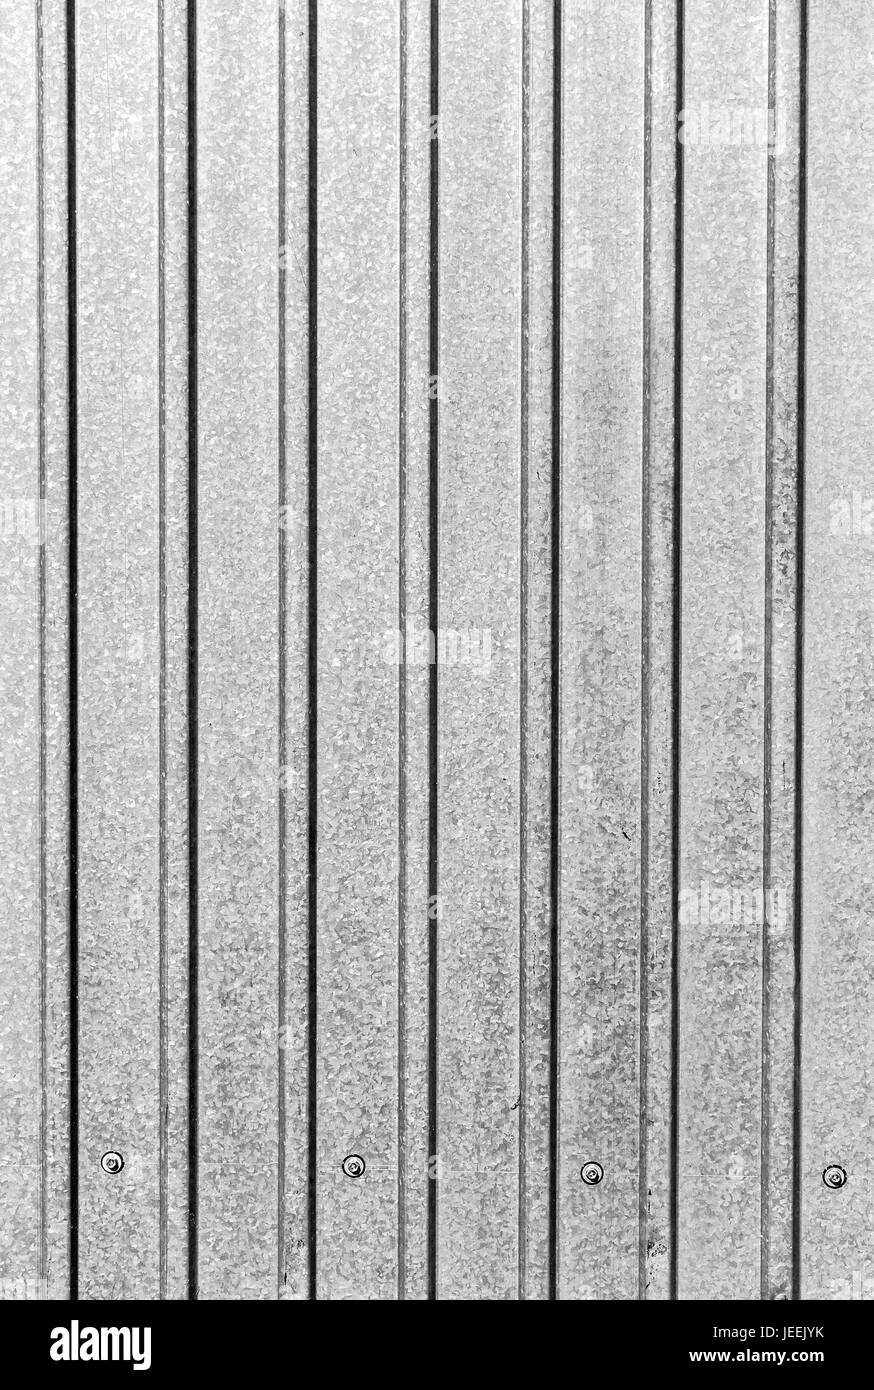 Part of the surface of the profiled sheet of galvanized steel as the background. - Stock Image